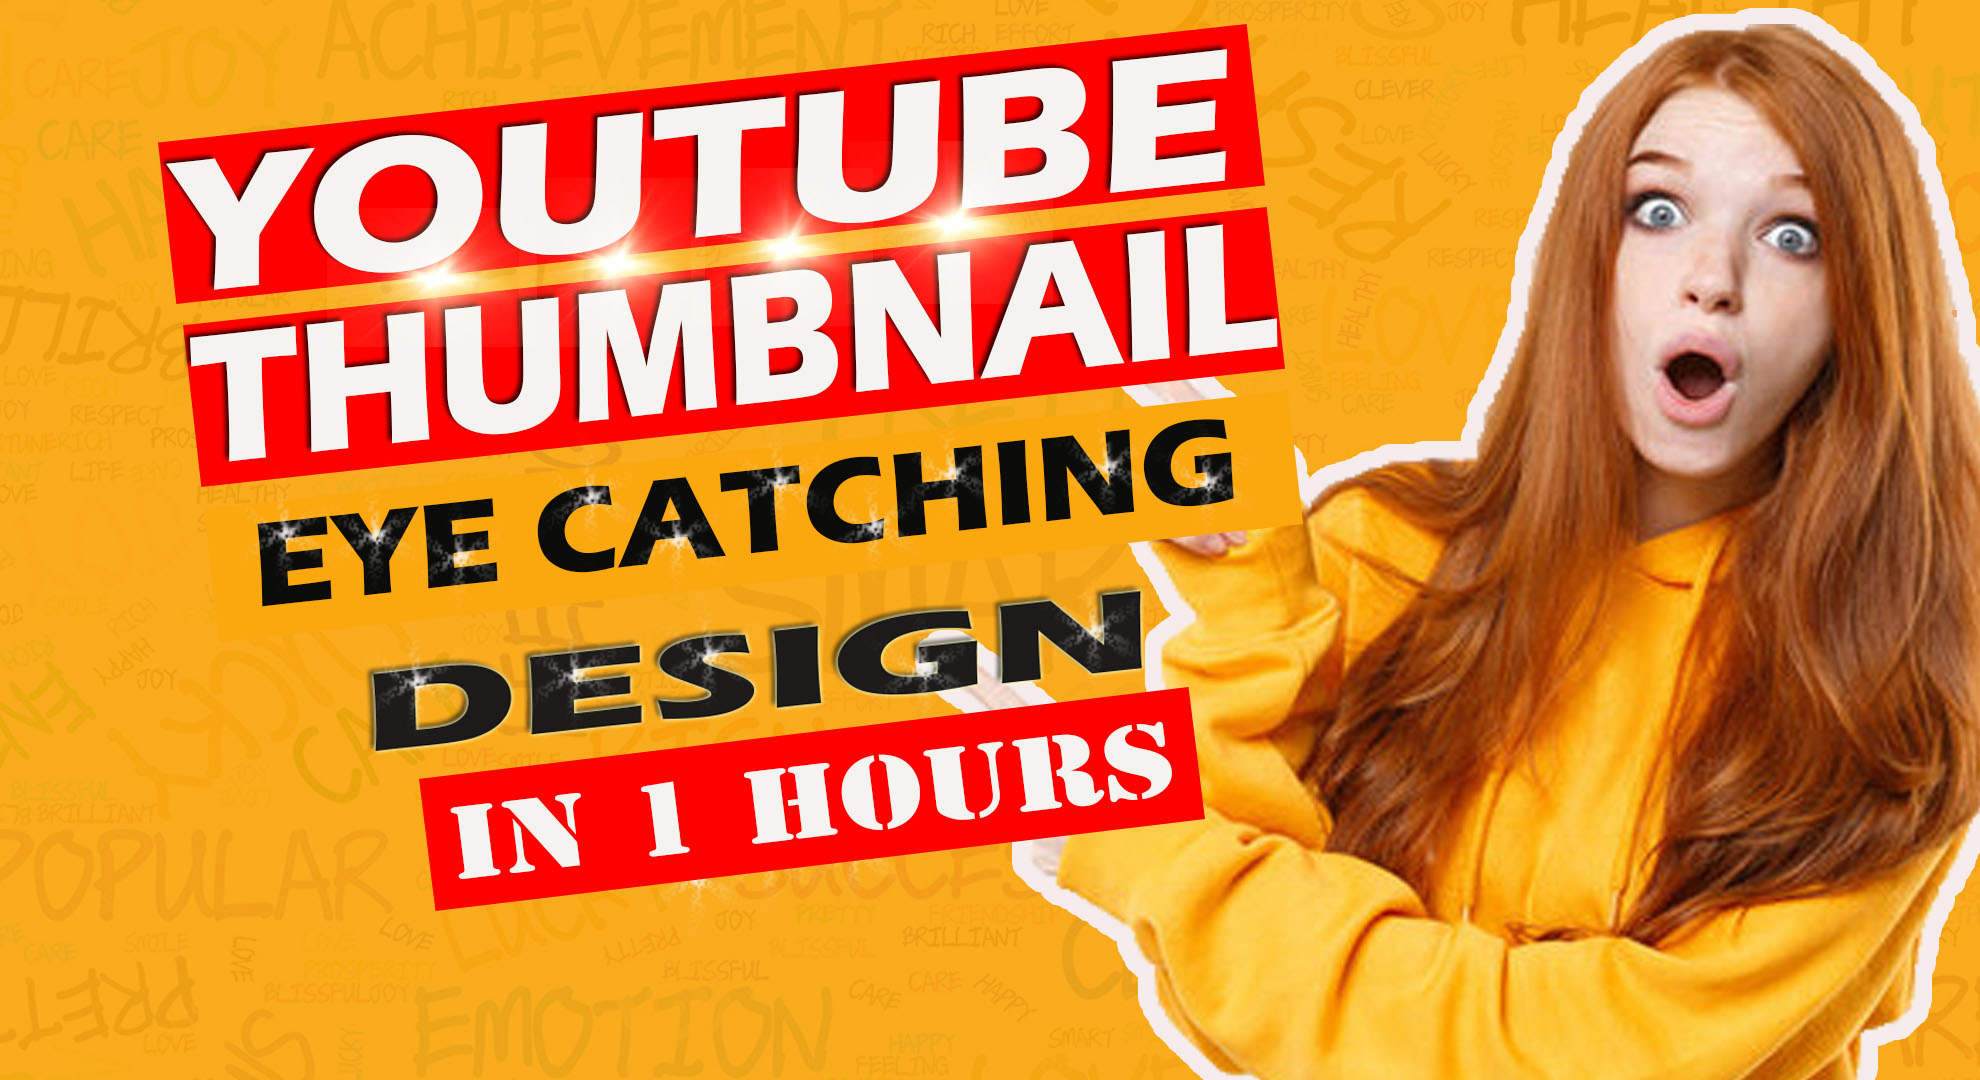 I will design amazing youtube thumbnail in 1 hour